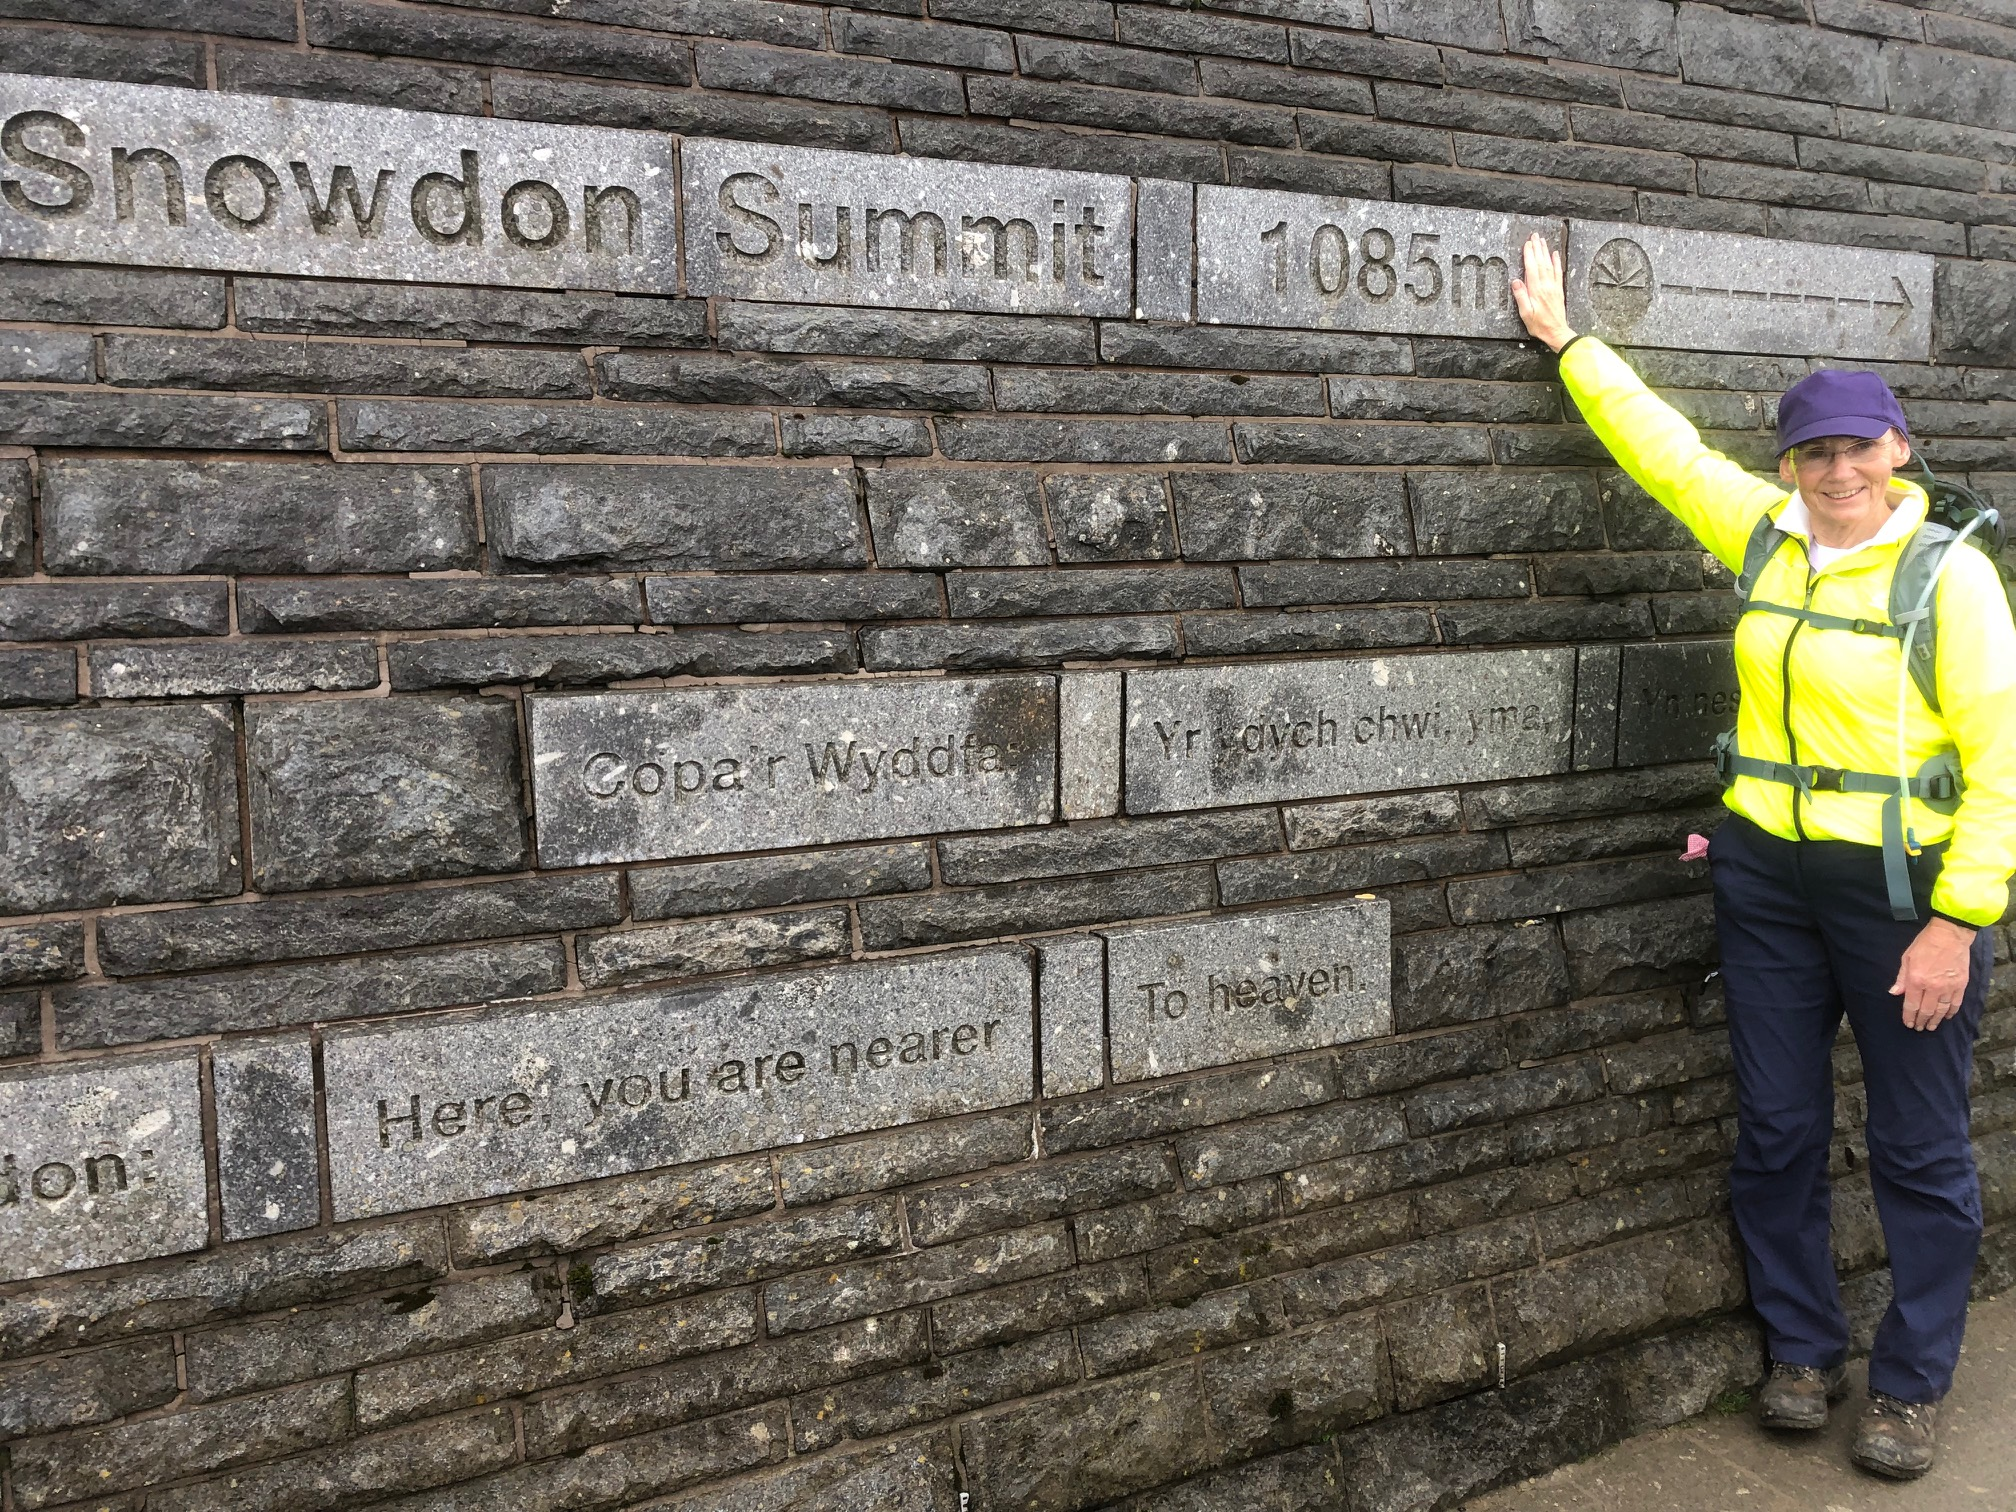 I did it!! At the top of Snowden